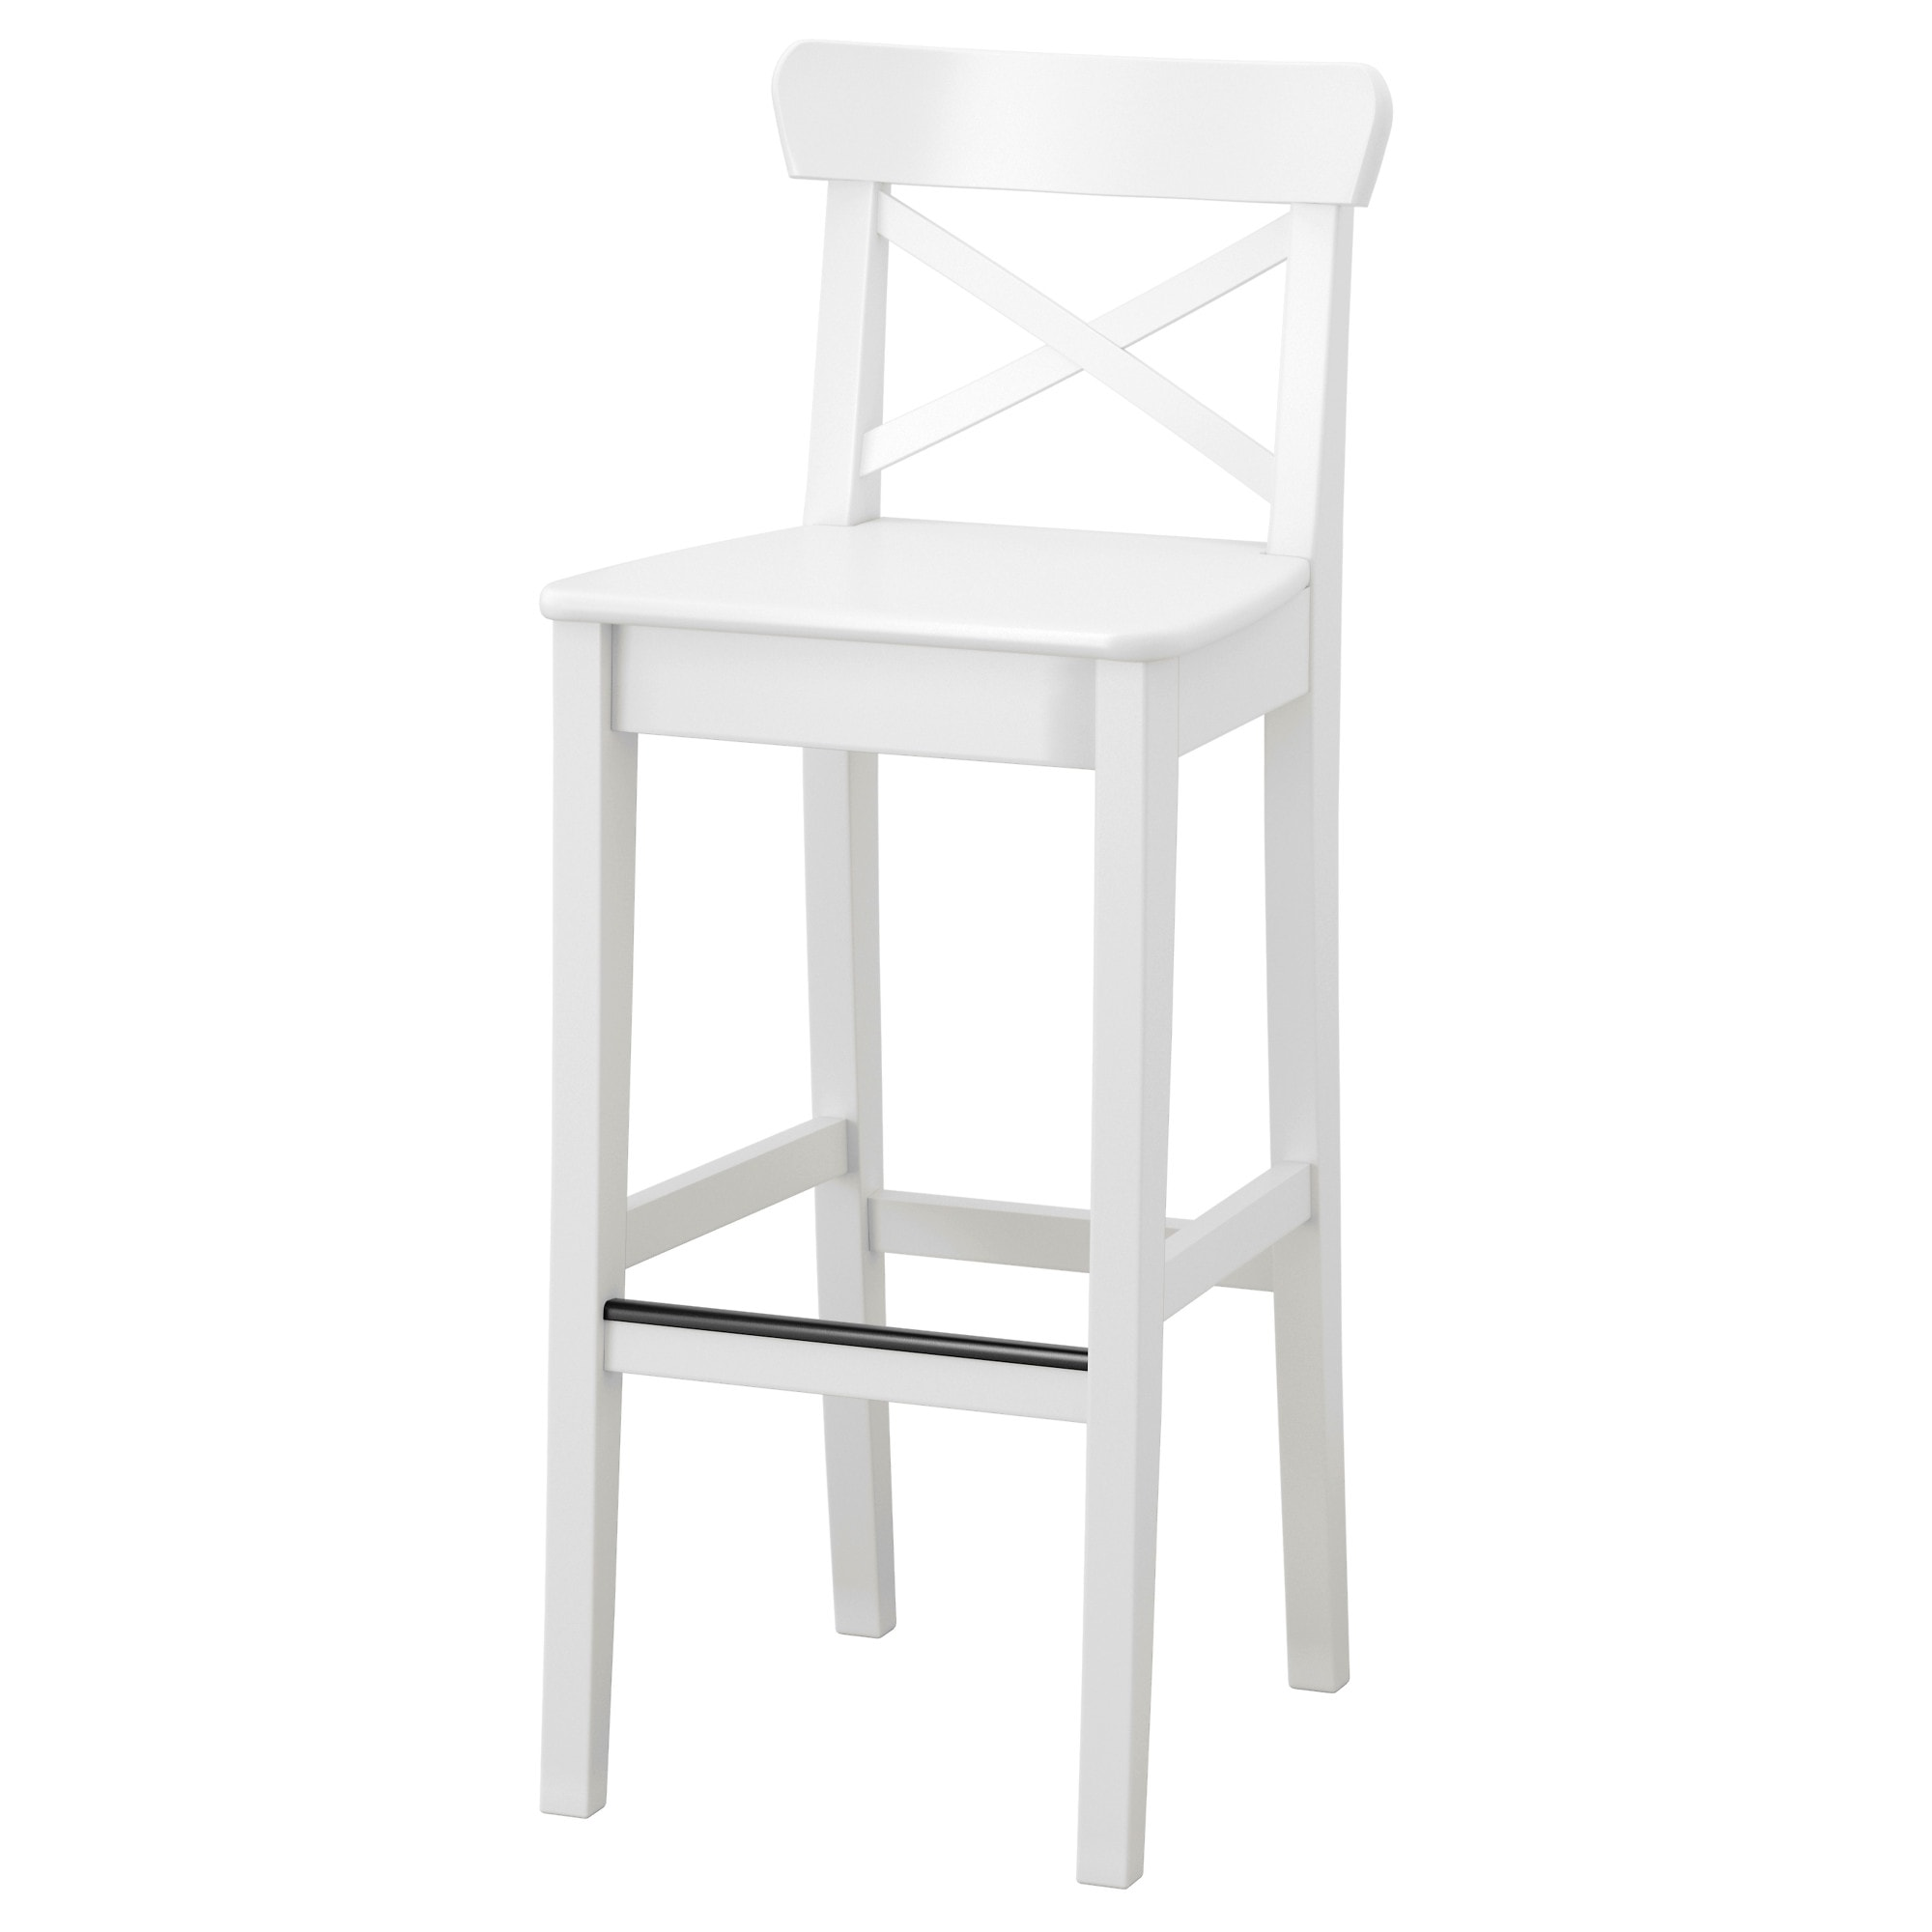 "INGOLF Bar stool with backrest 24 3 4 "" IKEA"